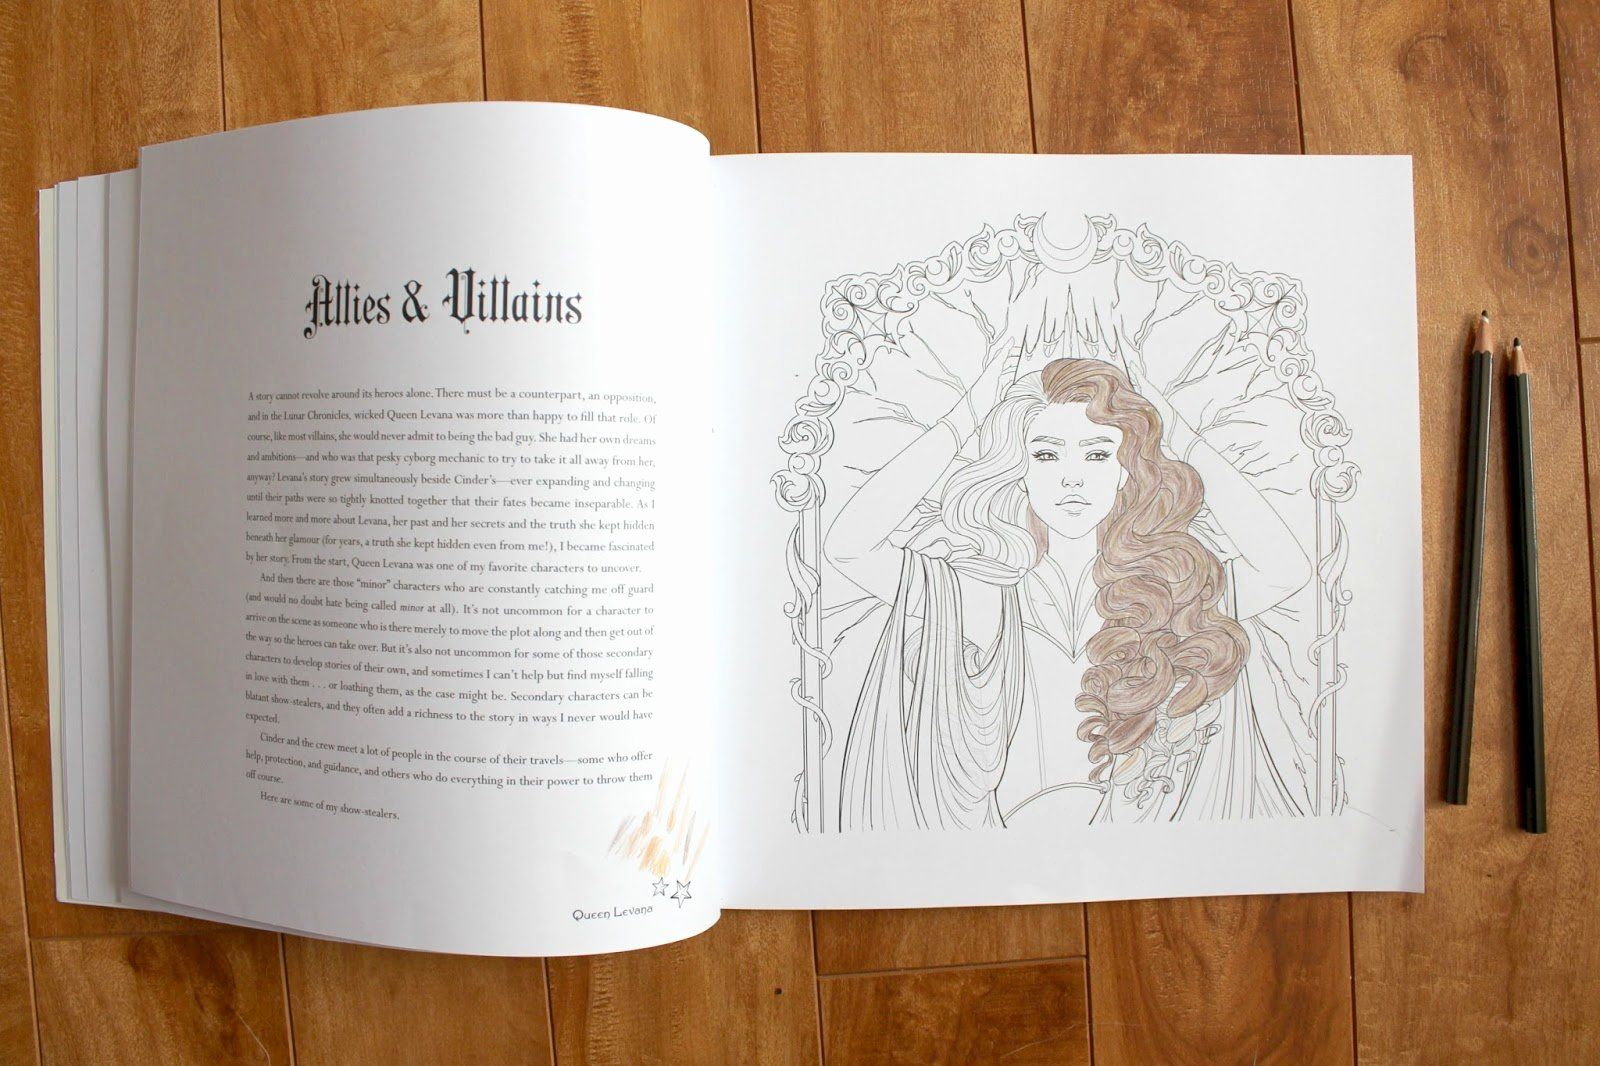 The Lunar Chronicles Coloring Book New The Lunar Chronicles Colouring Book Review Mermaid Coloring Book Cat Coloring Book Designs Coloring Books